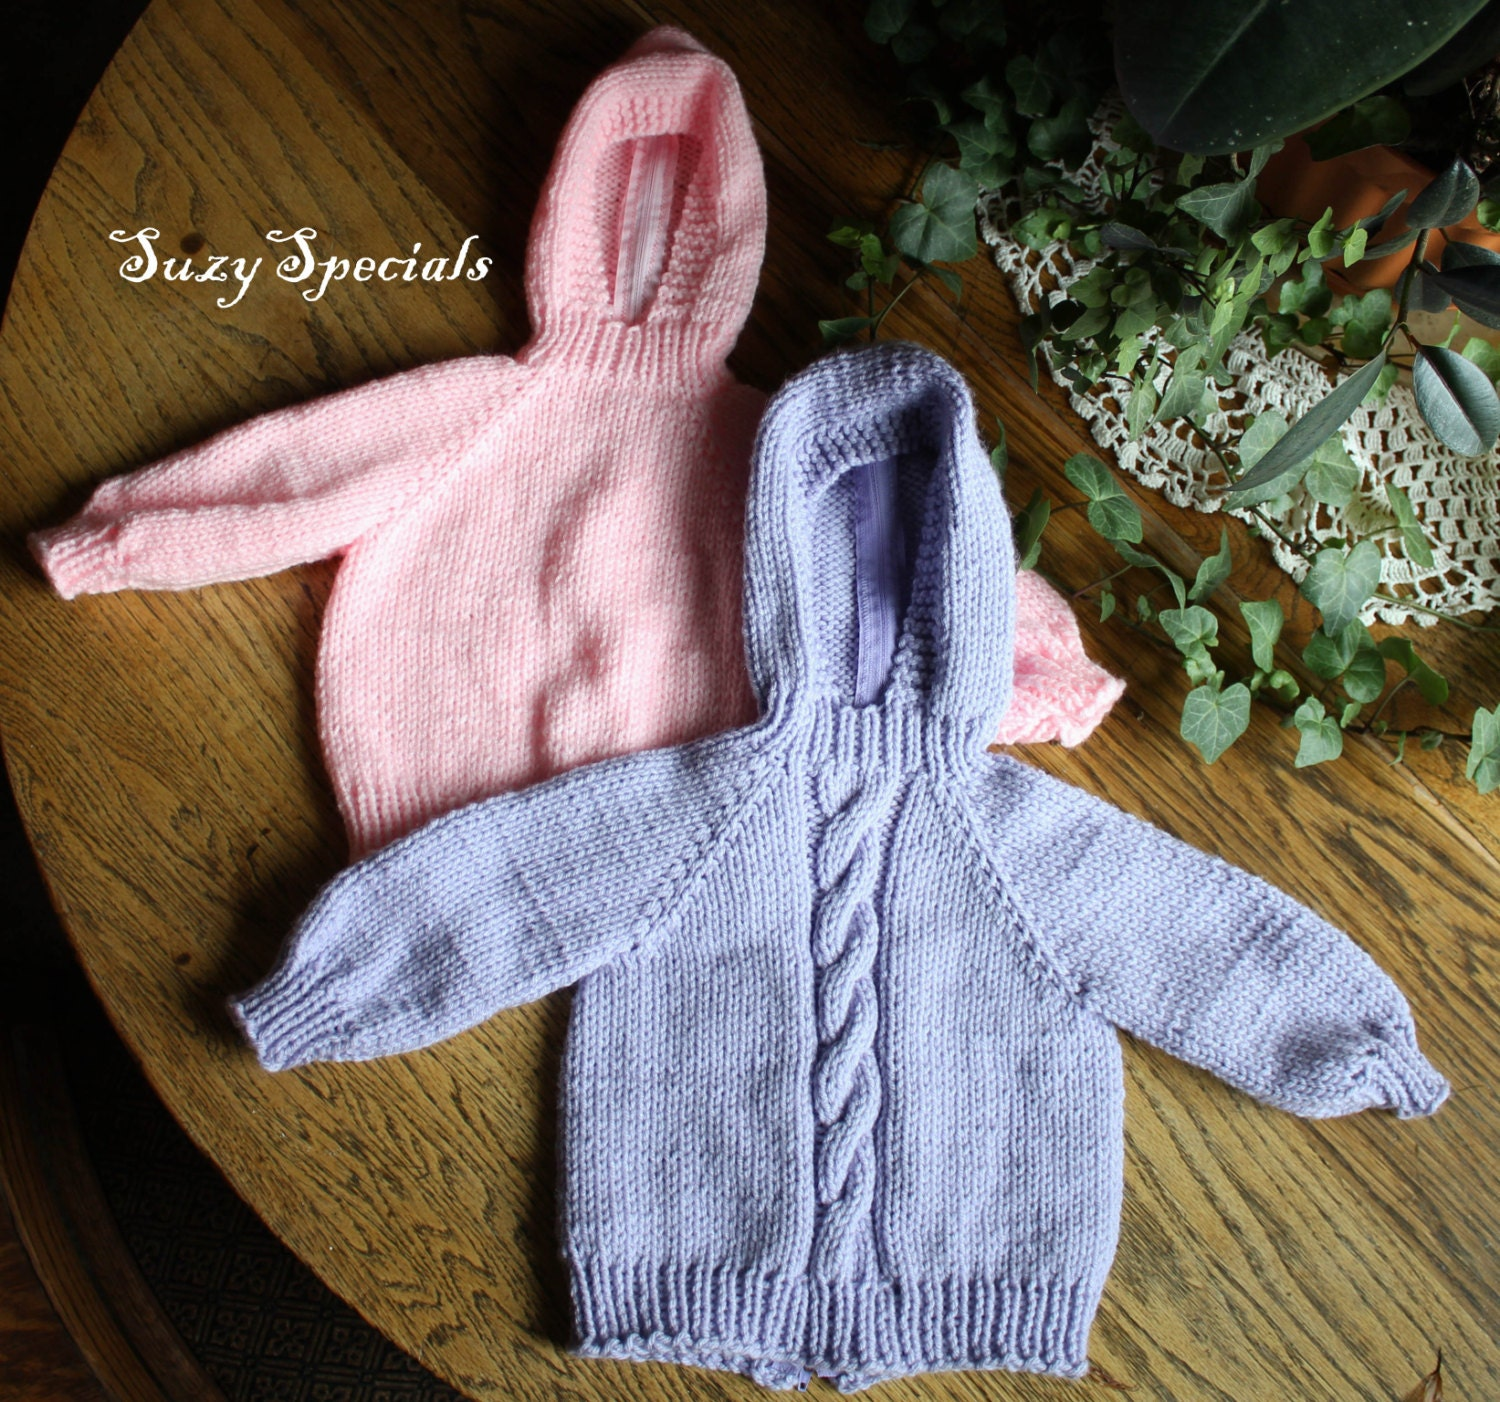 Knitting Pattern For Baby Sweater With Zipper In The Back : hooded knitted baby sweater with back zipper by SuzySpecials